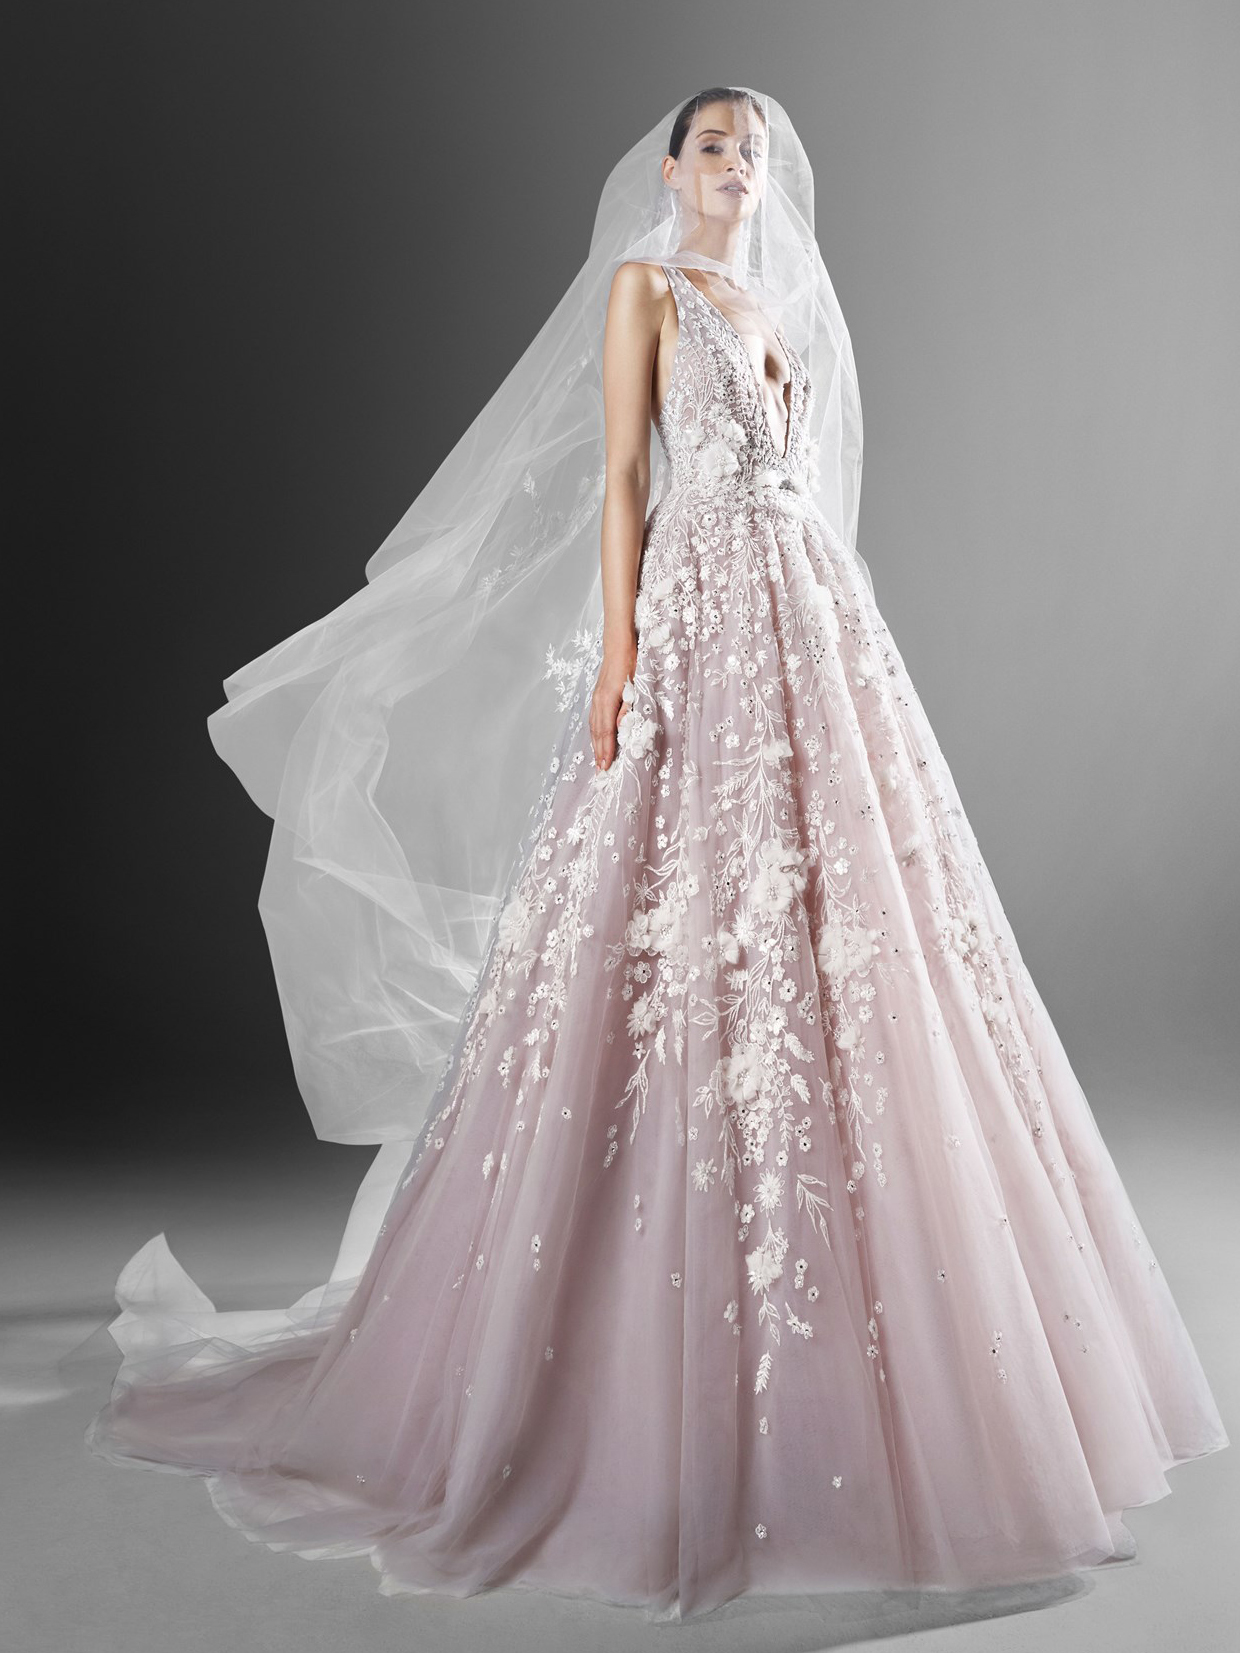 Bridal 3 Inspirated By Zuhair Murad Bridal Spring 2021